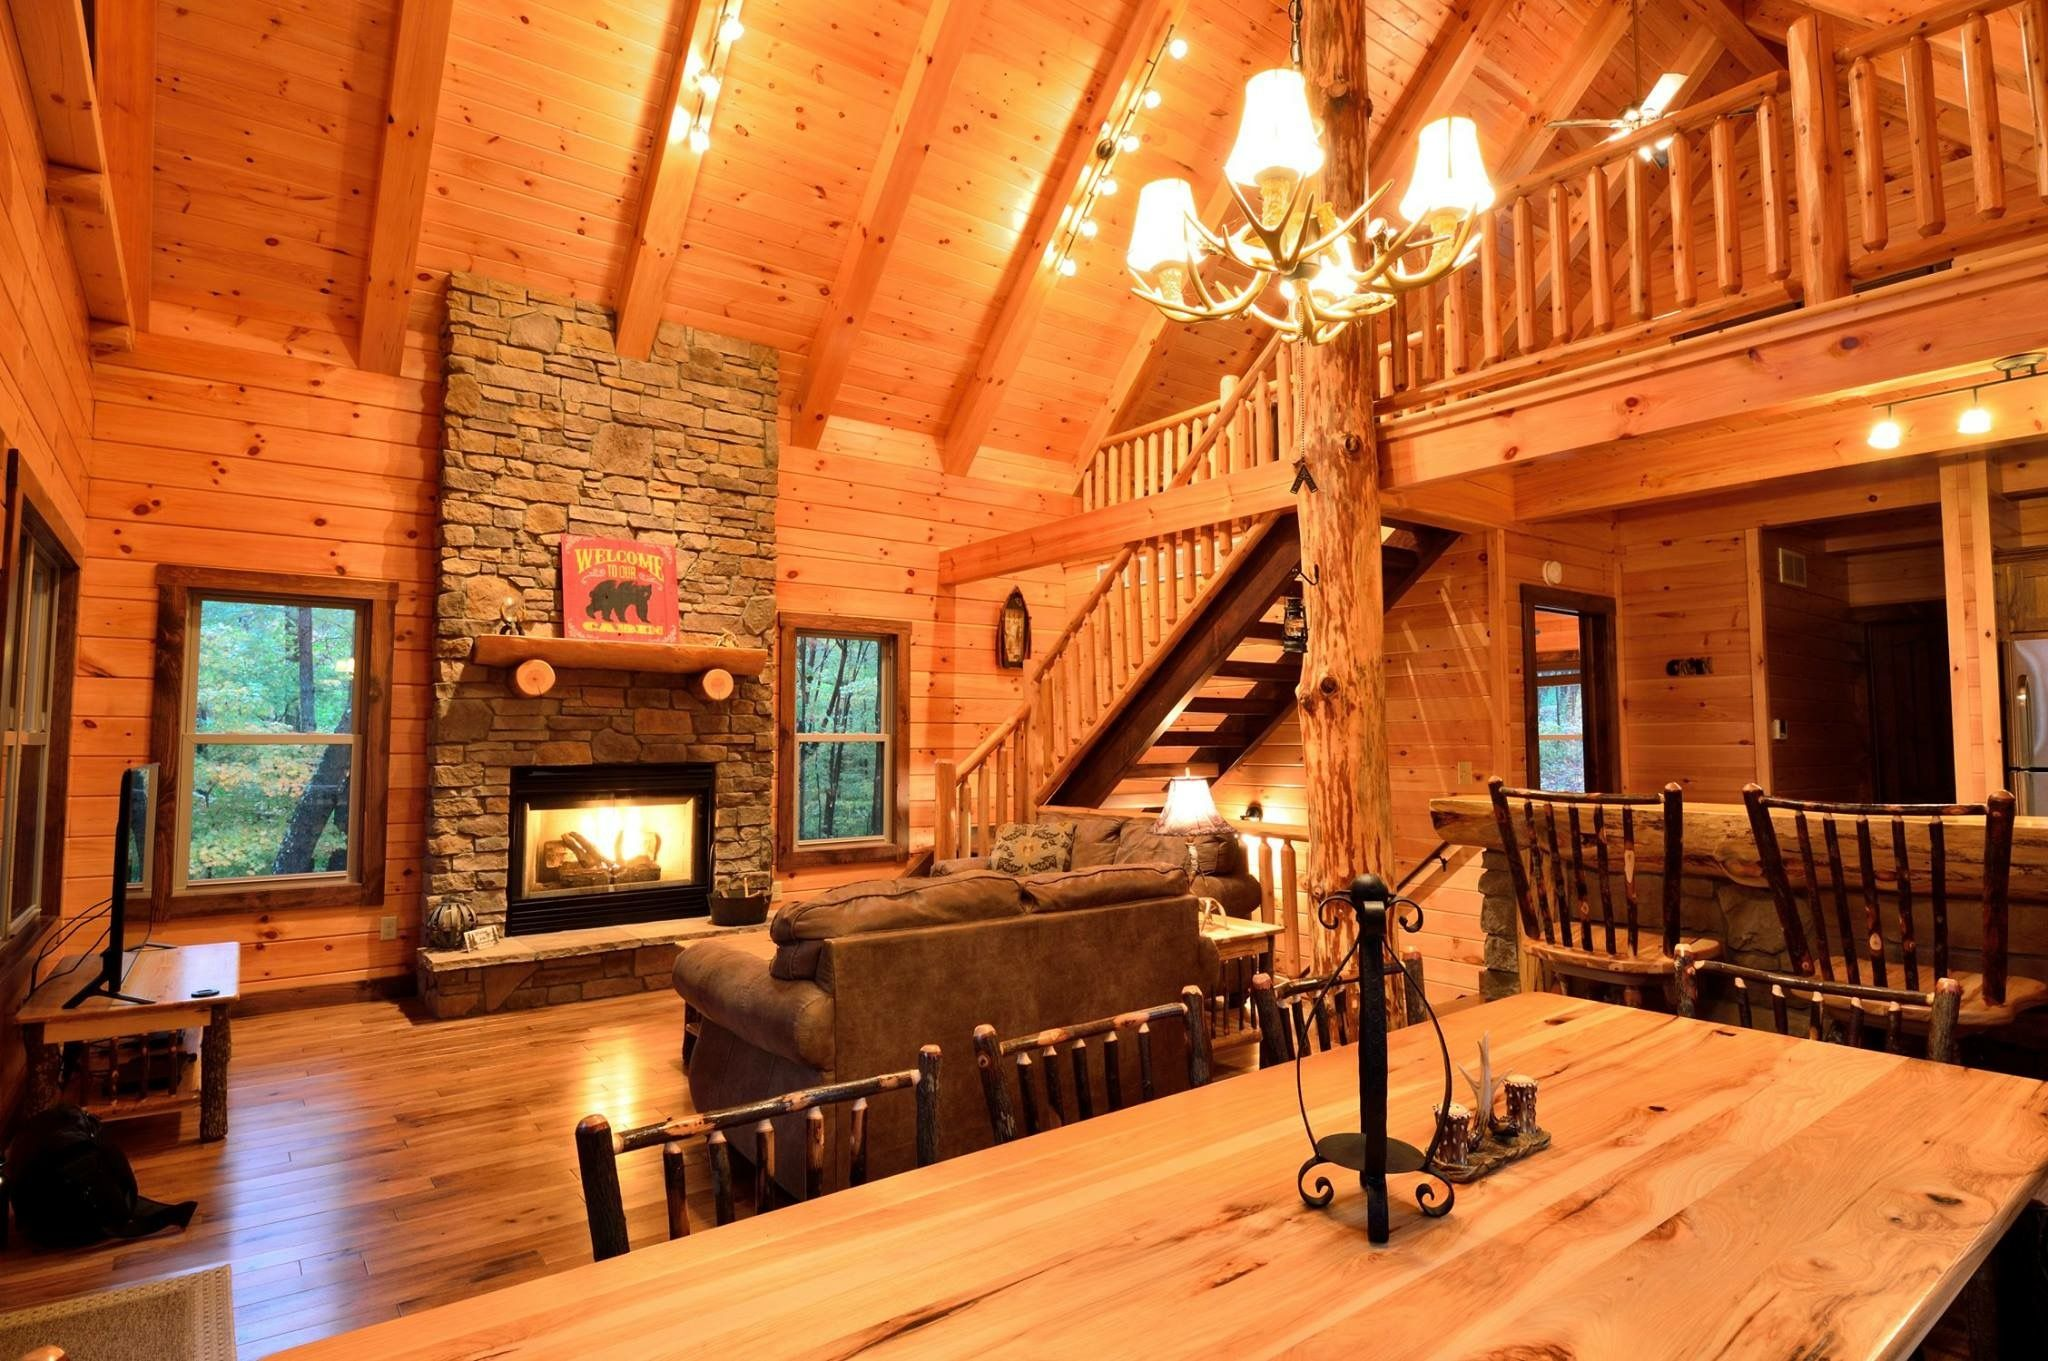 Pin By Amzel George Ball On My Future Home Cabin Fireplace